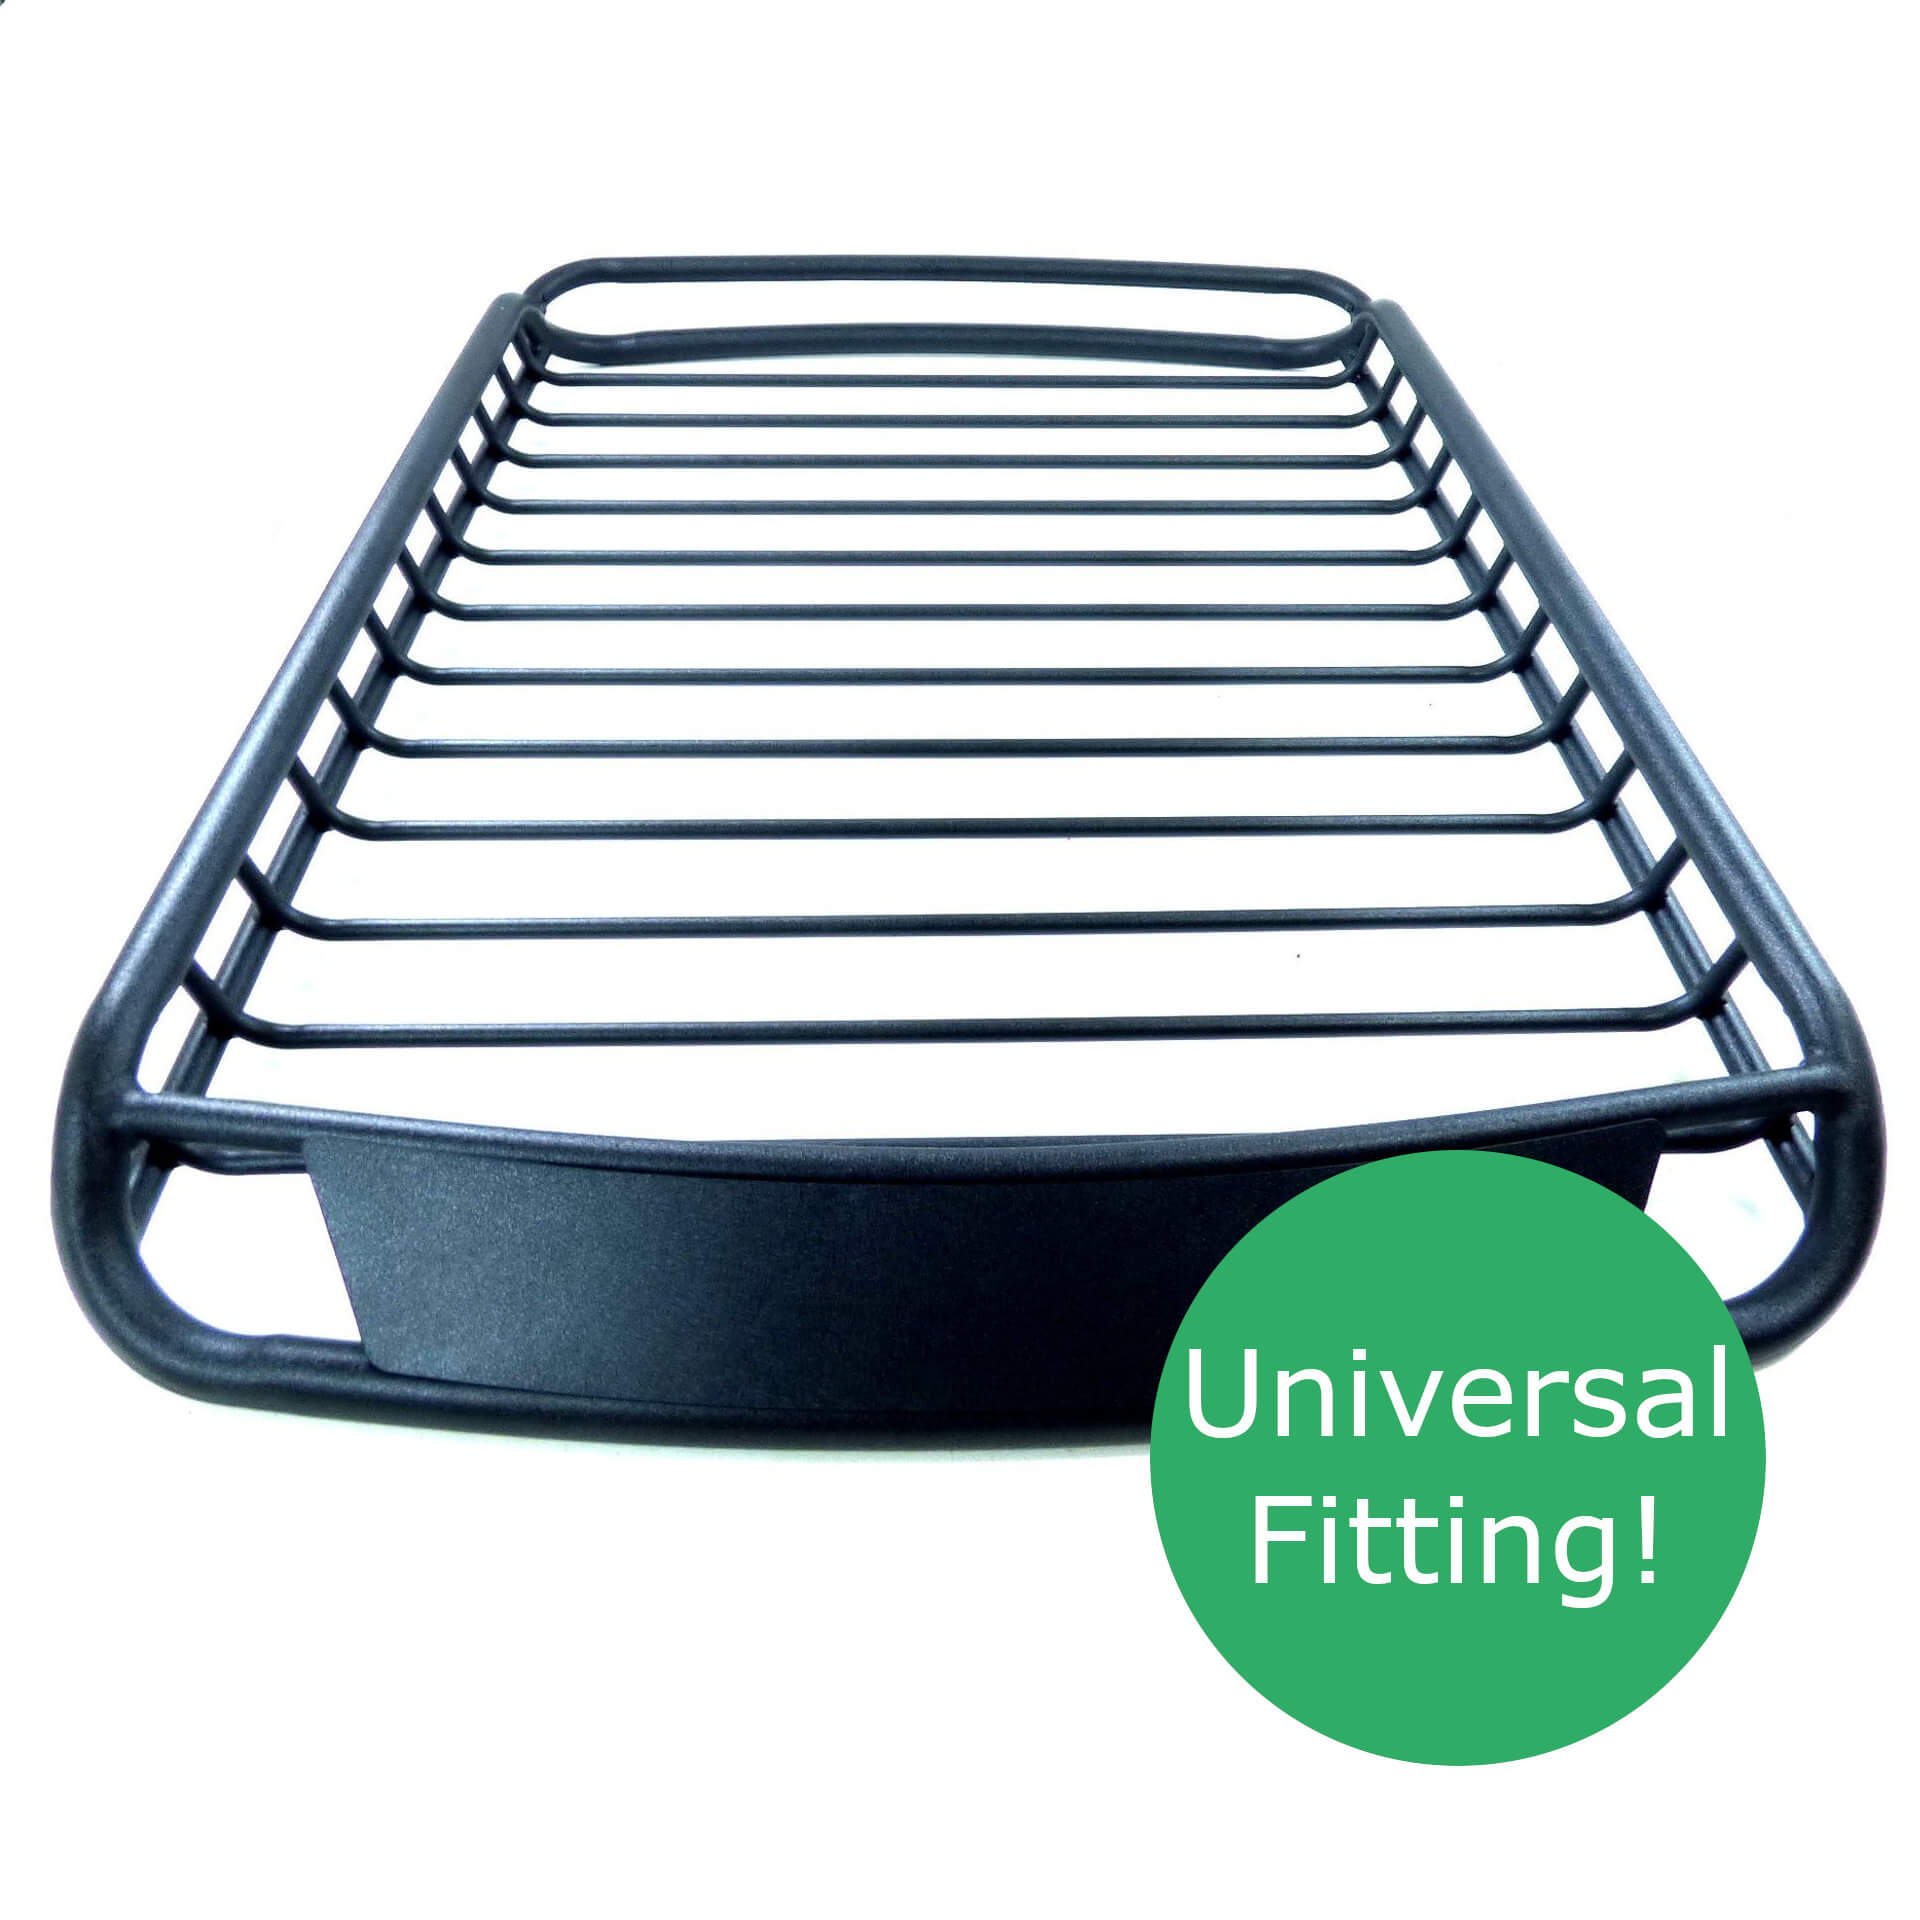 Direct4x4 Accessories UK - Universal everyday heavy-duty full basket roof rack